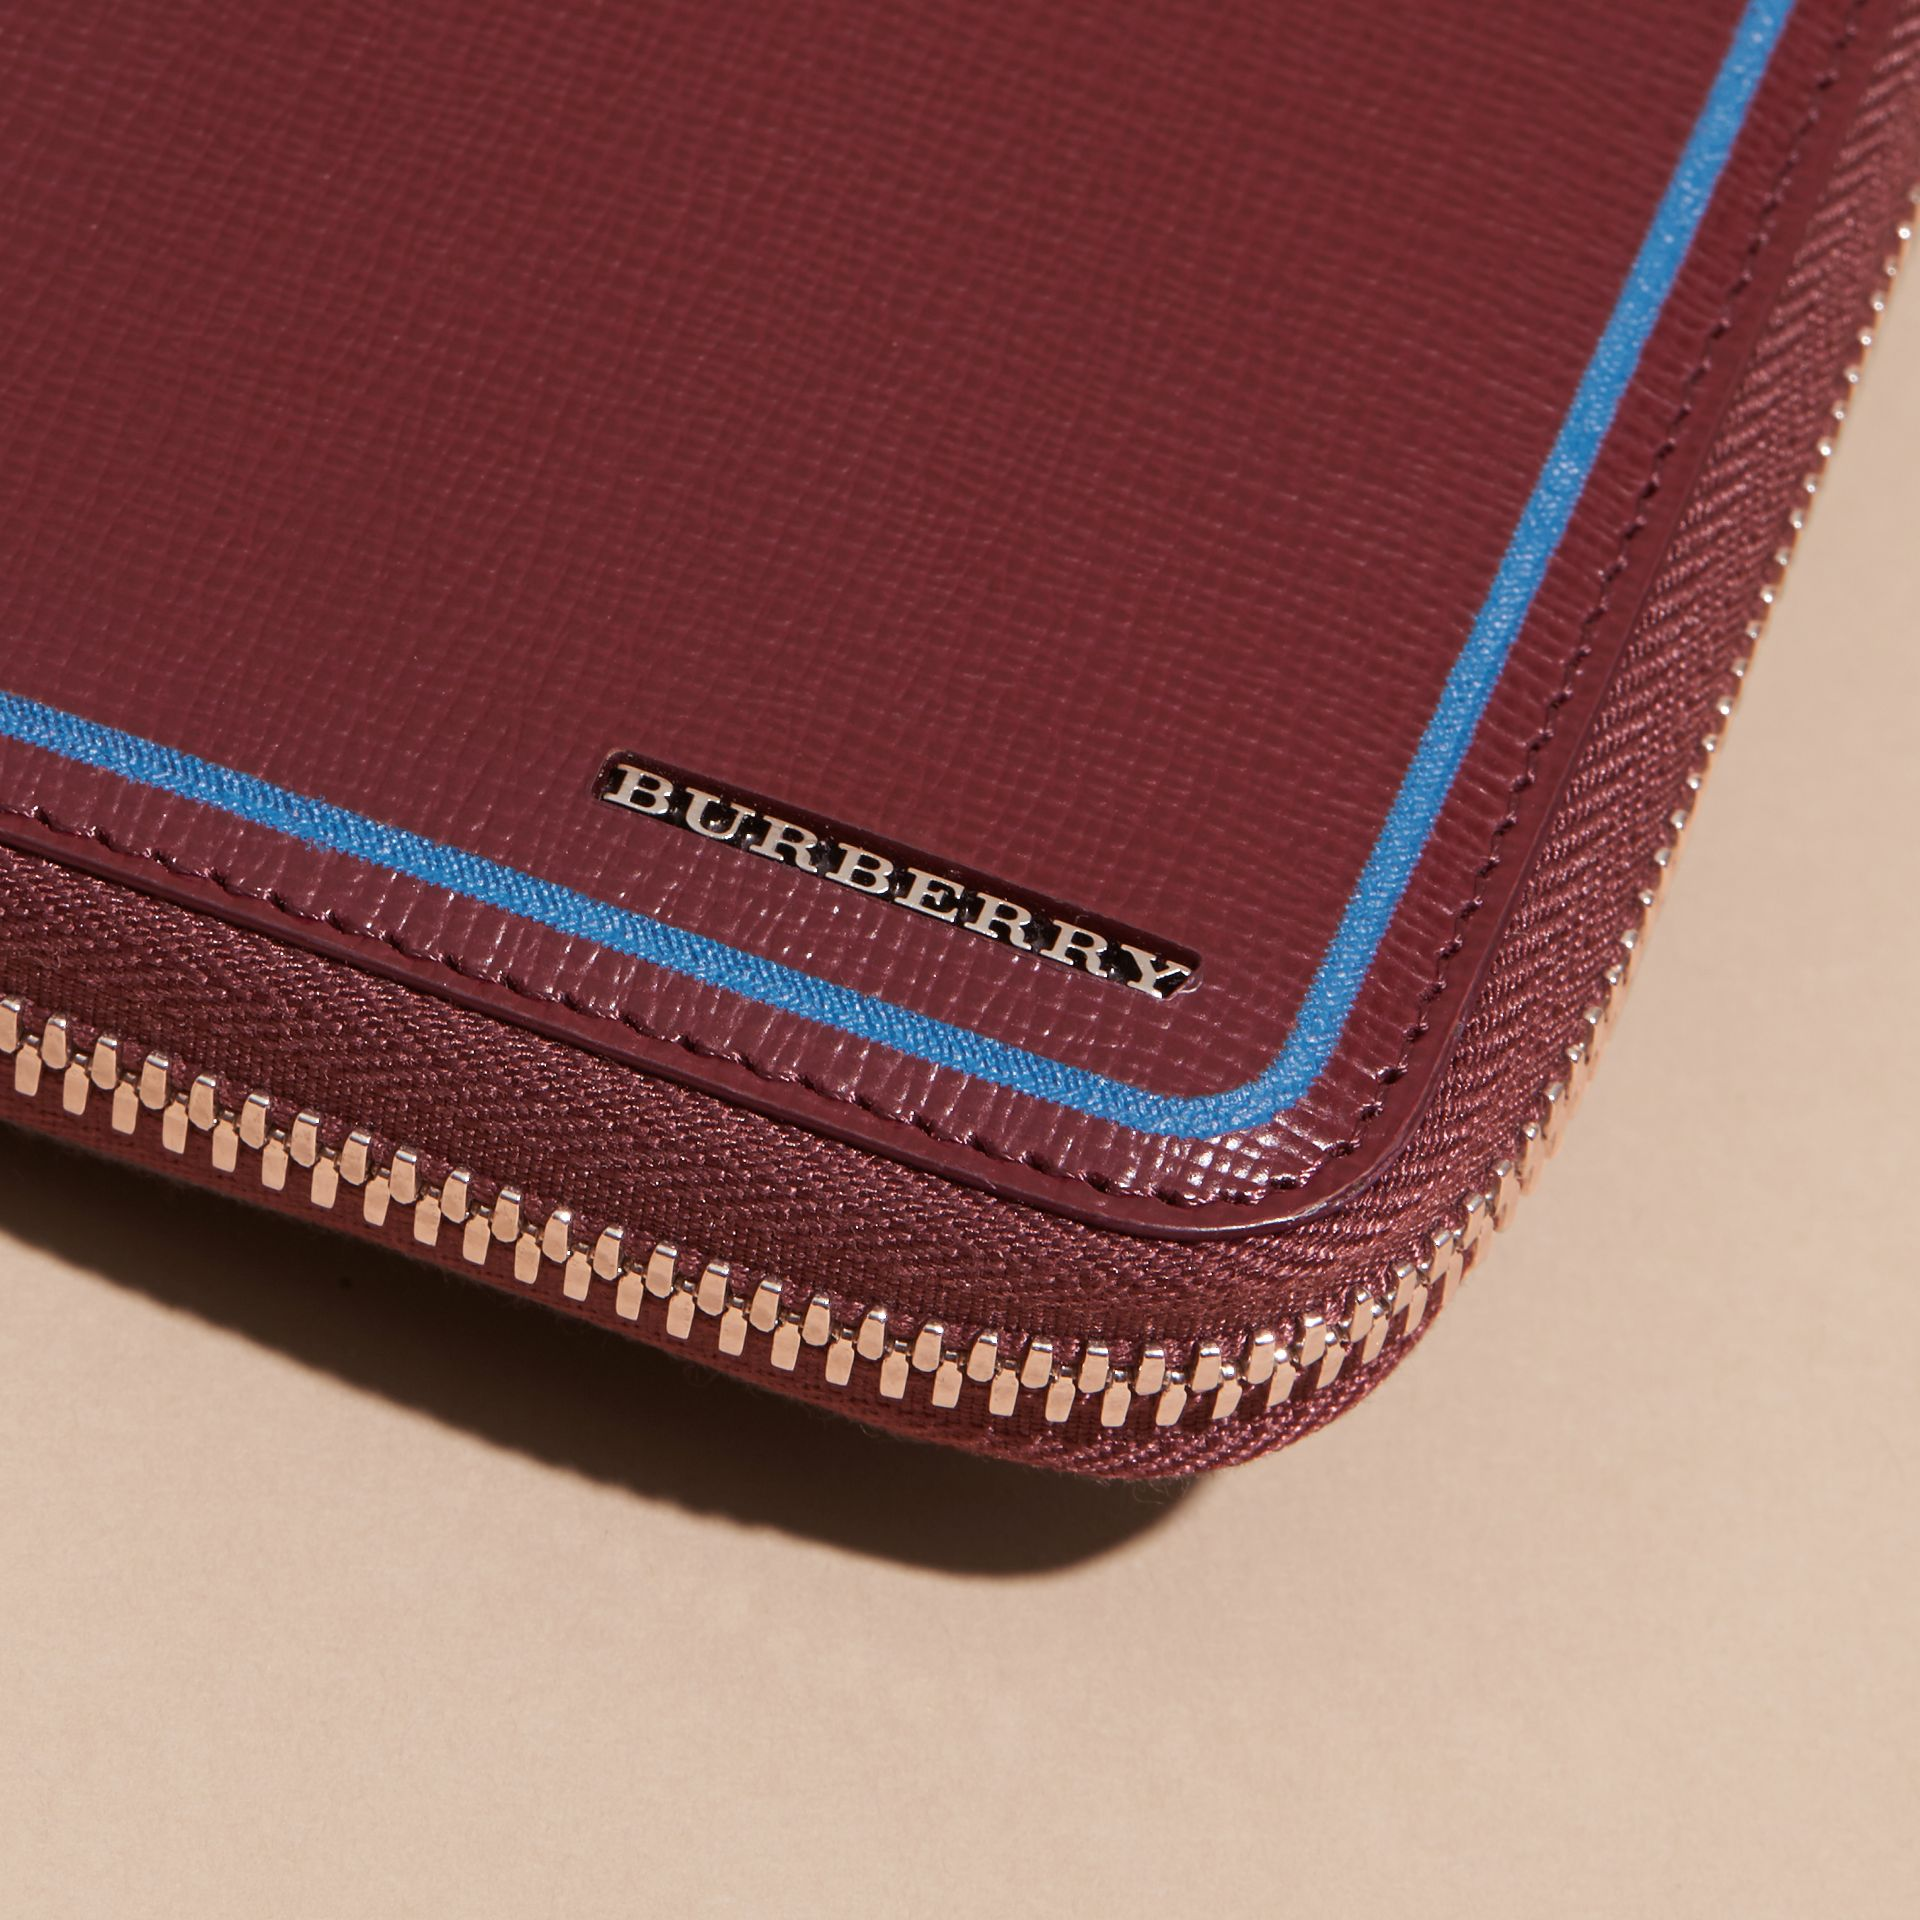 Burgundy red Border Detail London Leather Ziparound Wallet Burgundy Red - gallery image 3